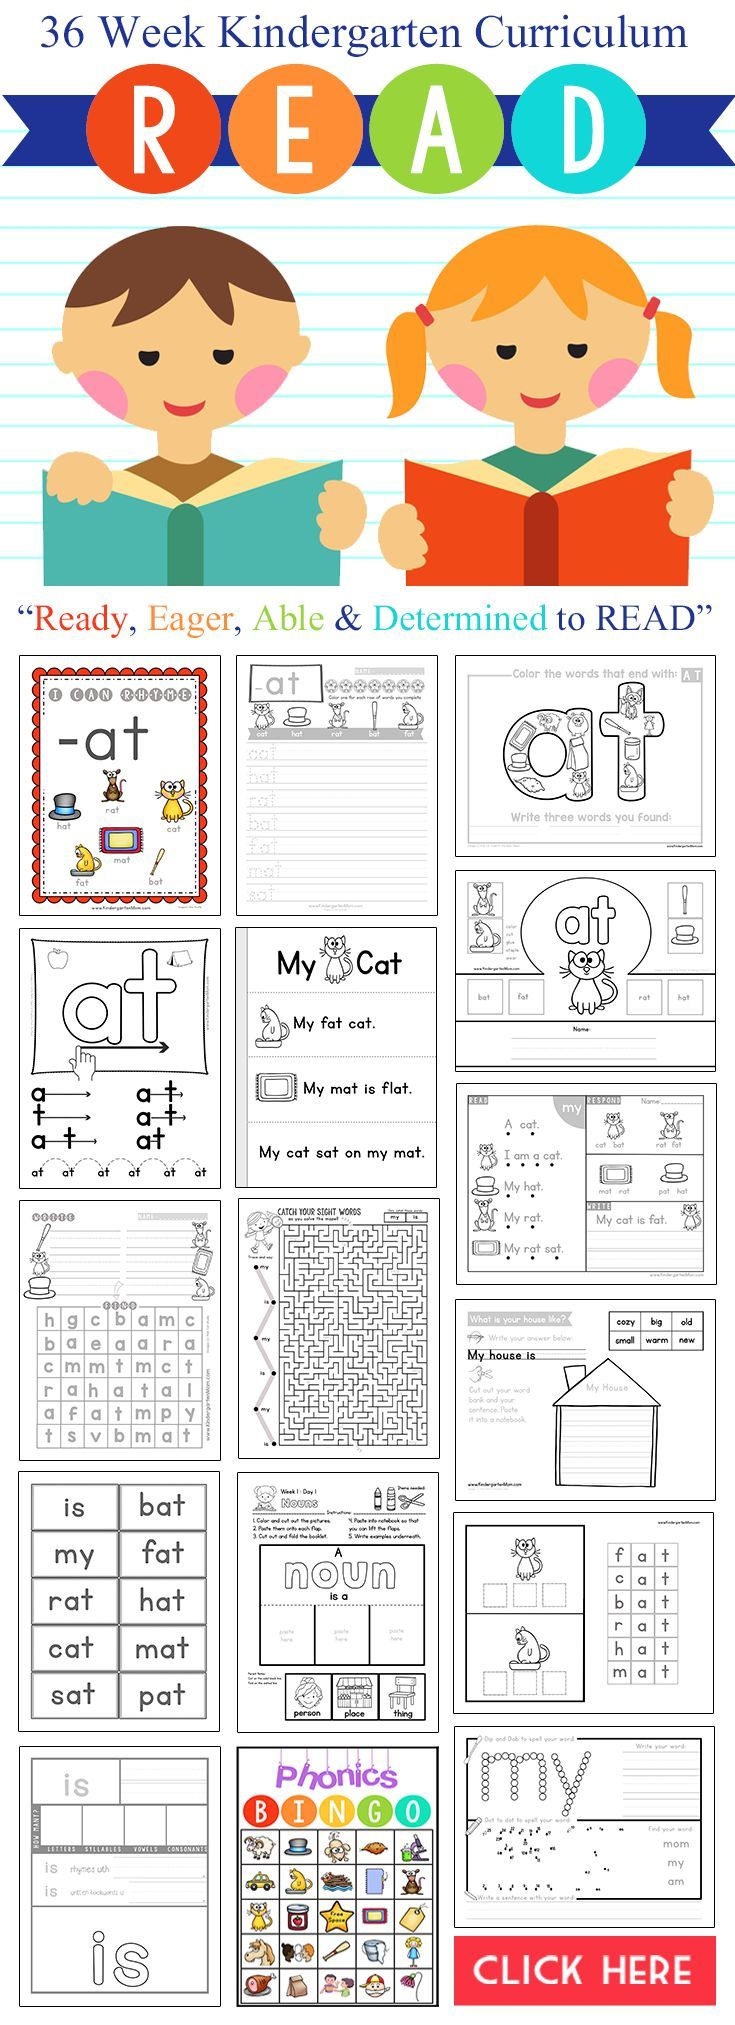 R.E.A.D.- Kindergarten Reading Curriculum | Learning for ...